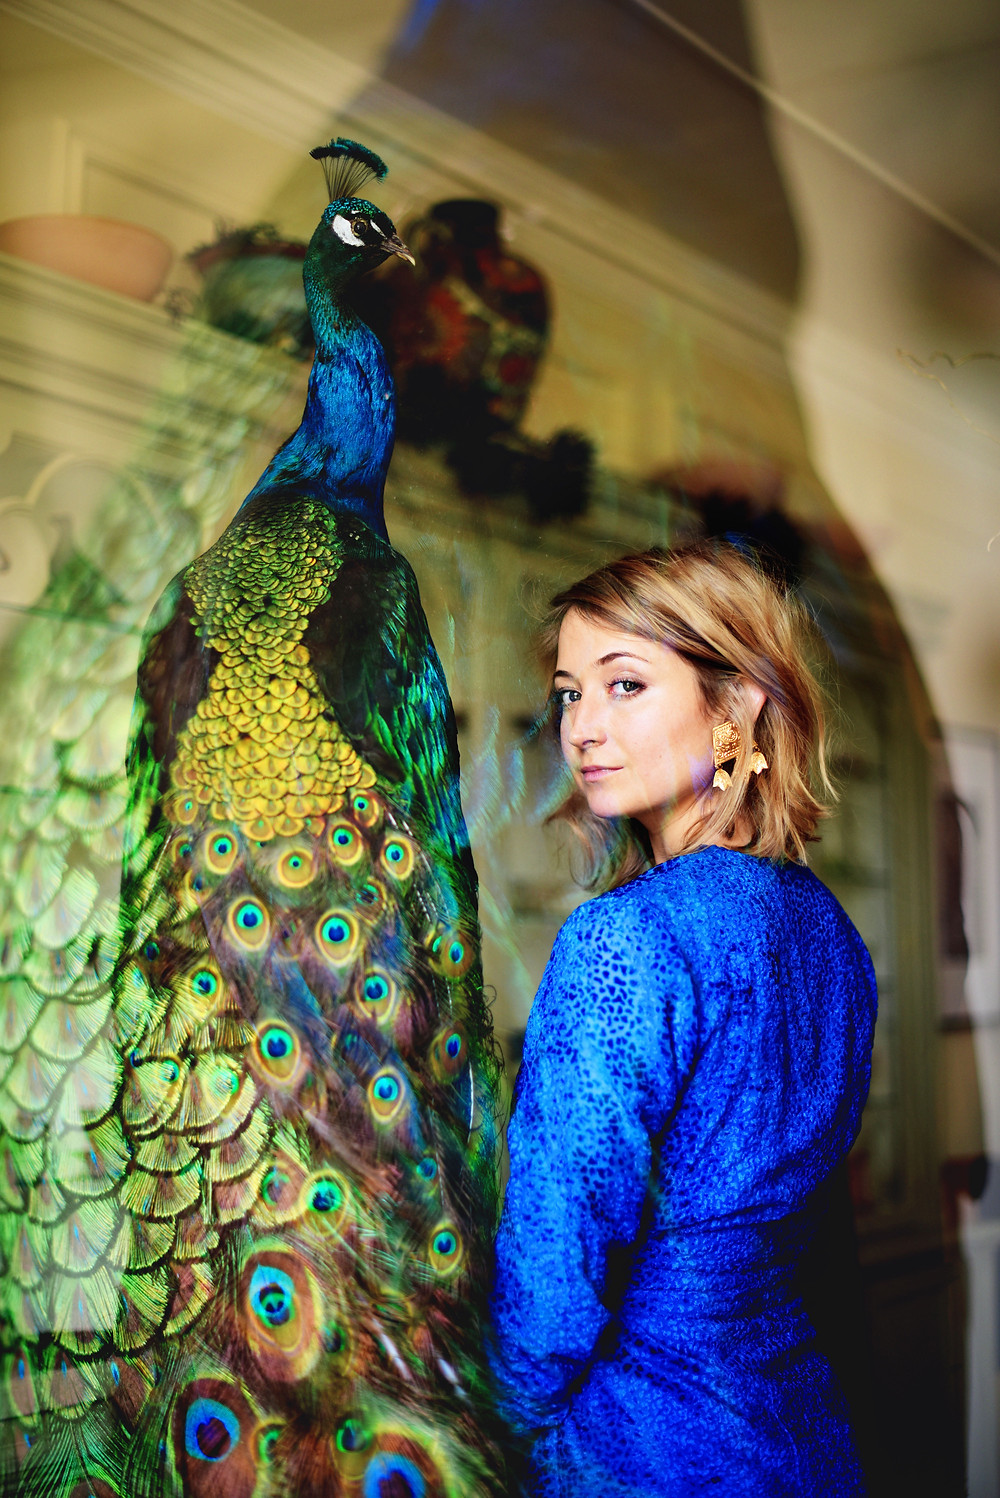 Artist Lily Adele posing with a giant taxidermy peacock